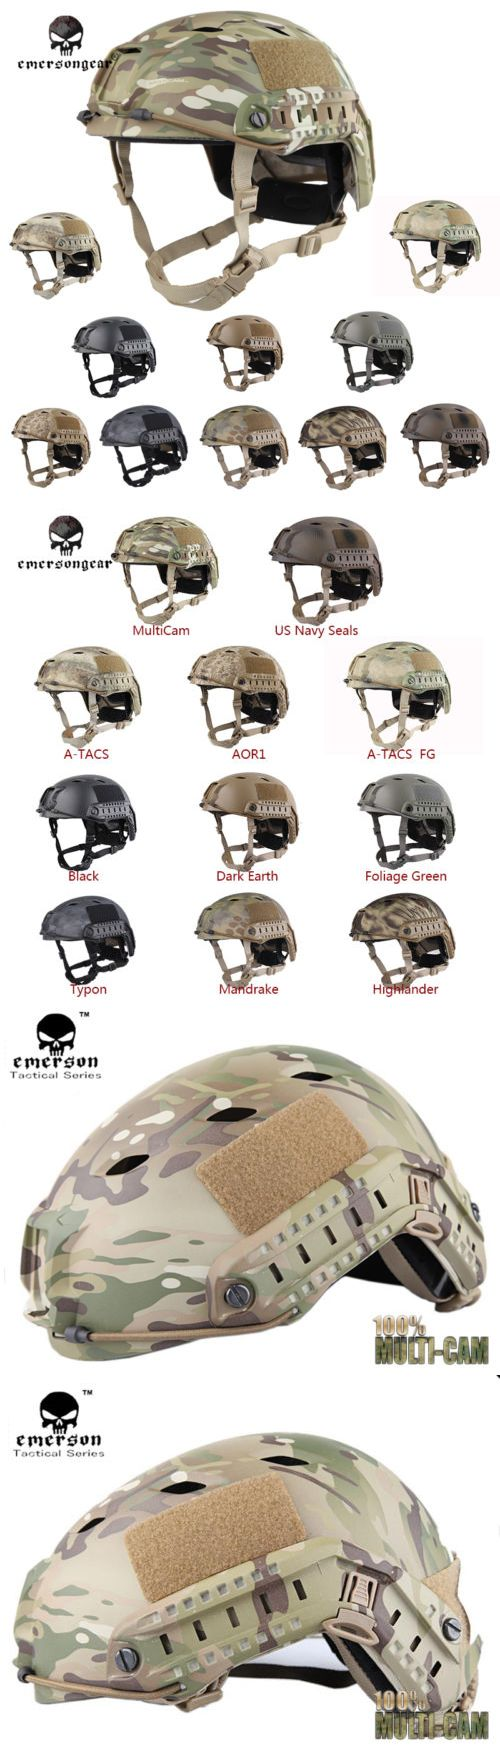 Hats and Headwear 177892: Emerson Fast Helmet Bj Type Tacitcal Outdoor Airsoft Headwear Mc Black De 5659 -> BUY IT NOW ONLY: $51.73 on eBay!